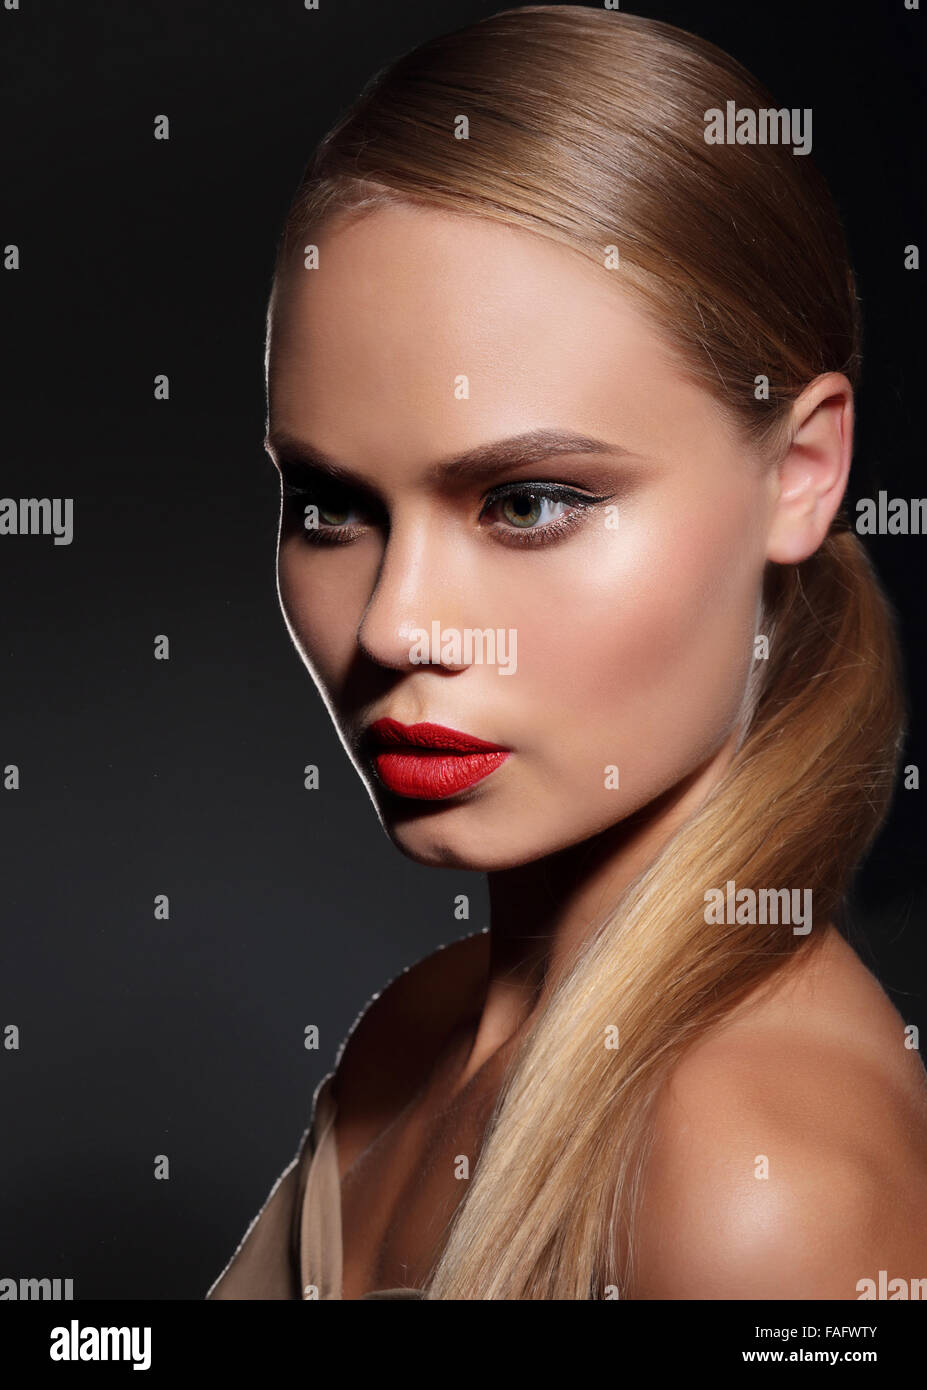 Young woman with straight hair and and red lips on dark background. Portrait. - Stock Image